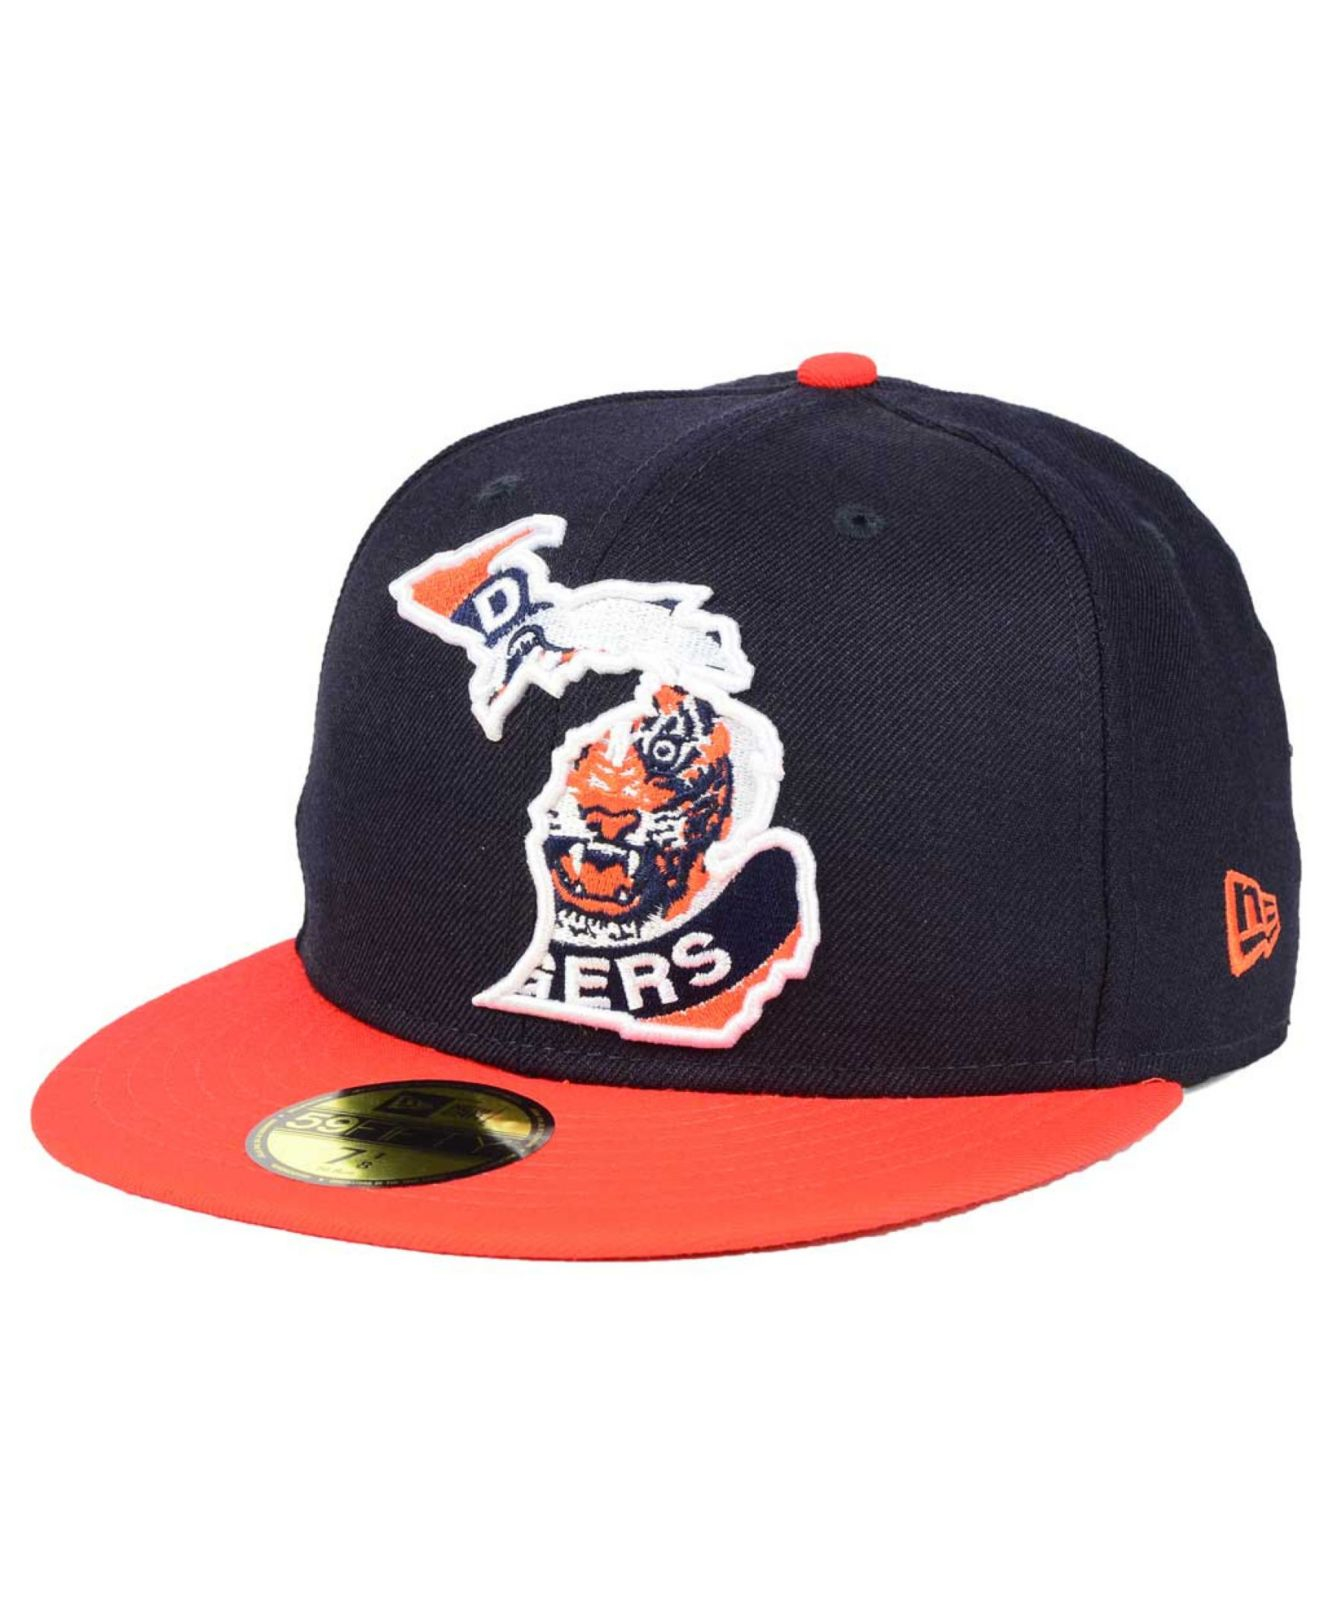 hot sale online 6930f f25a5 ... shopping lyst ktz detroit tigers big state 59fifty cap in blue for men  b4542 f9dc3